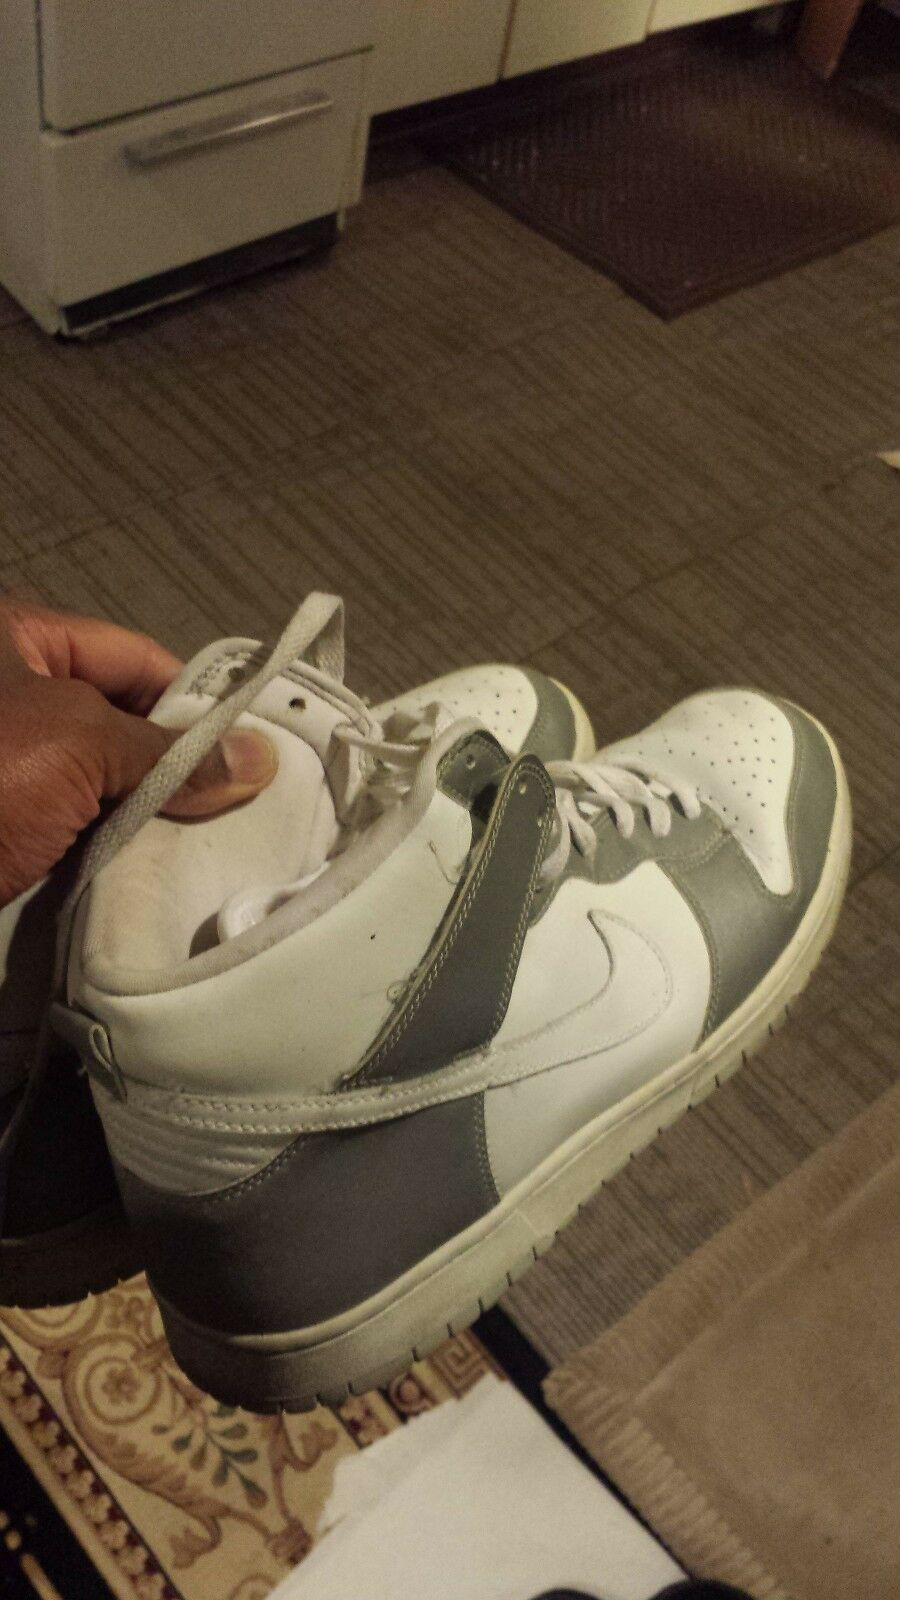 White and Silver Nike Air Force Ones Size 12